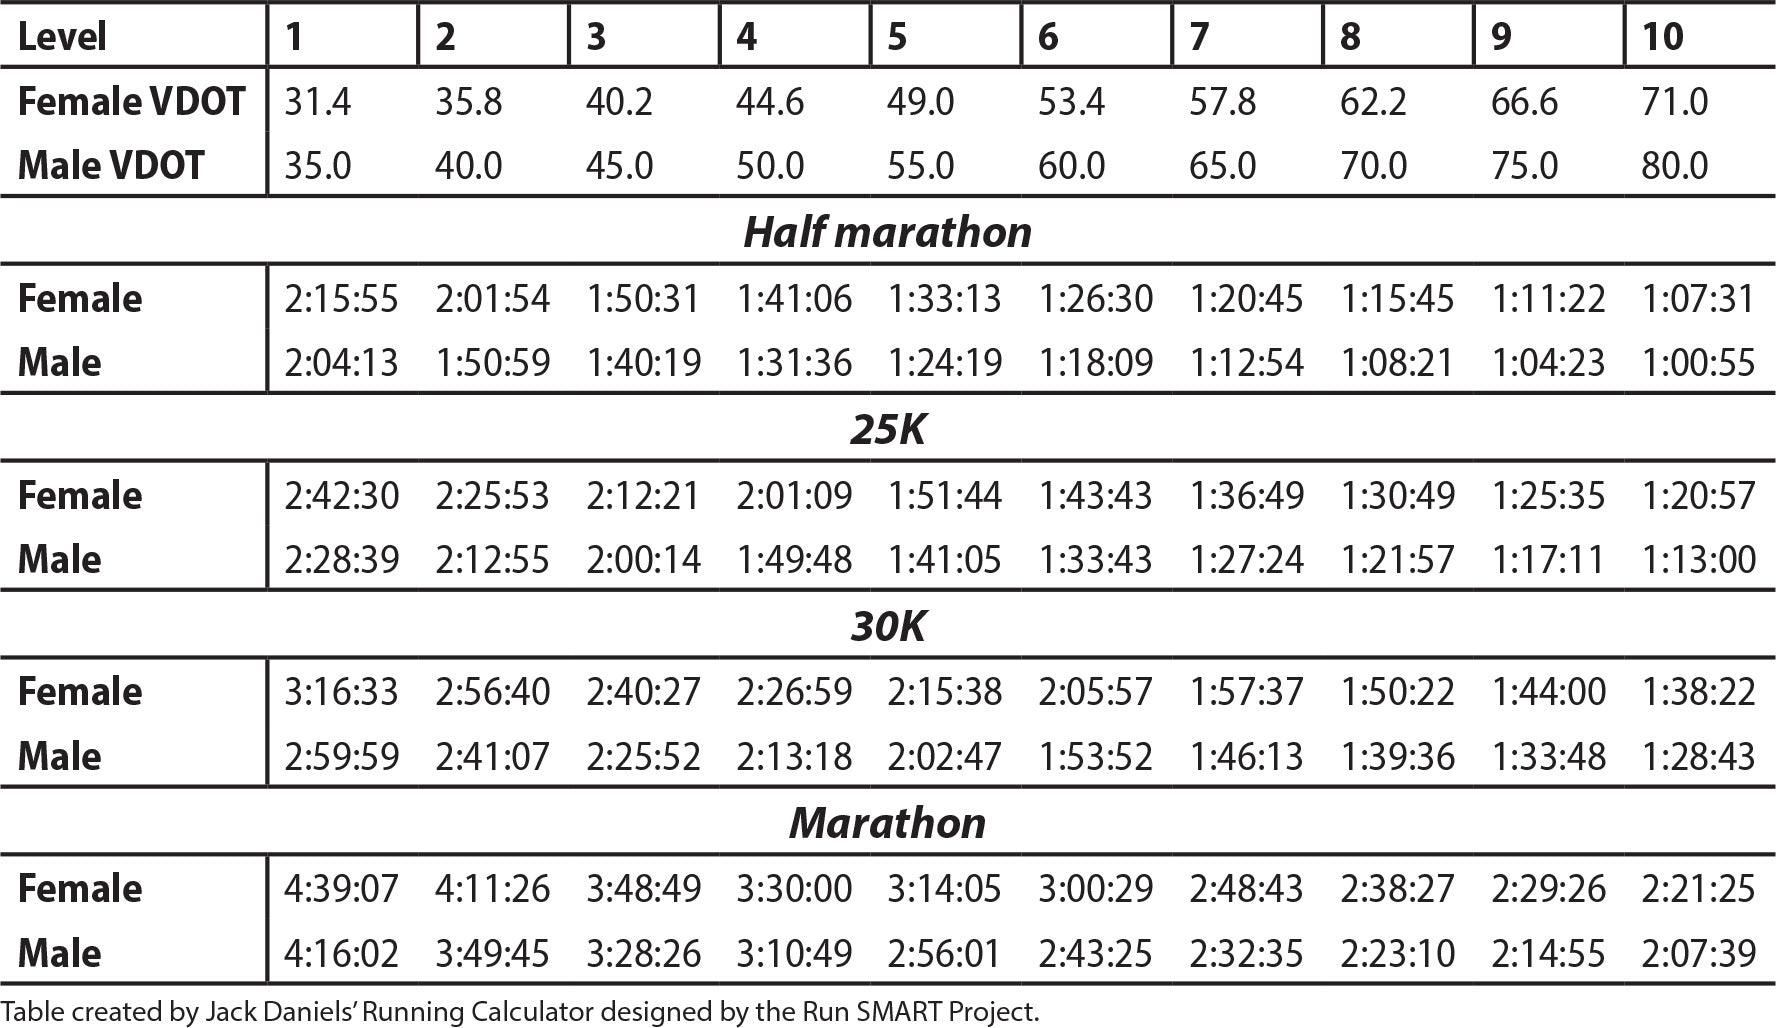 Table 5.4 Performance Levels for Females and Males Based on VDOT and Race Times